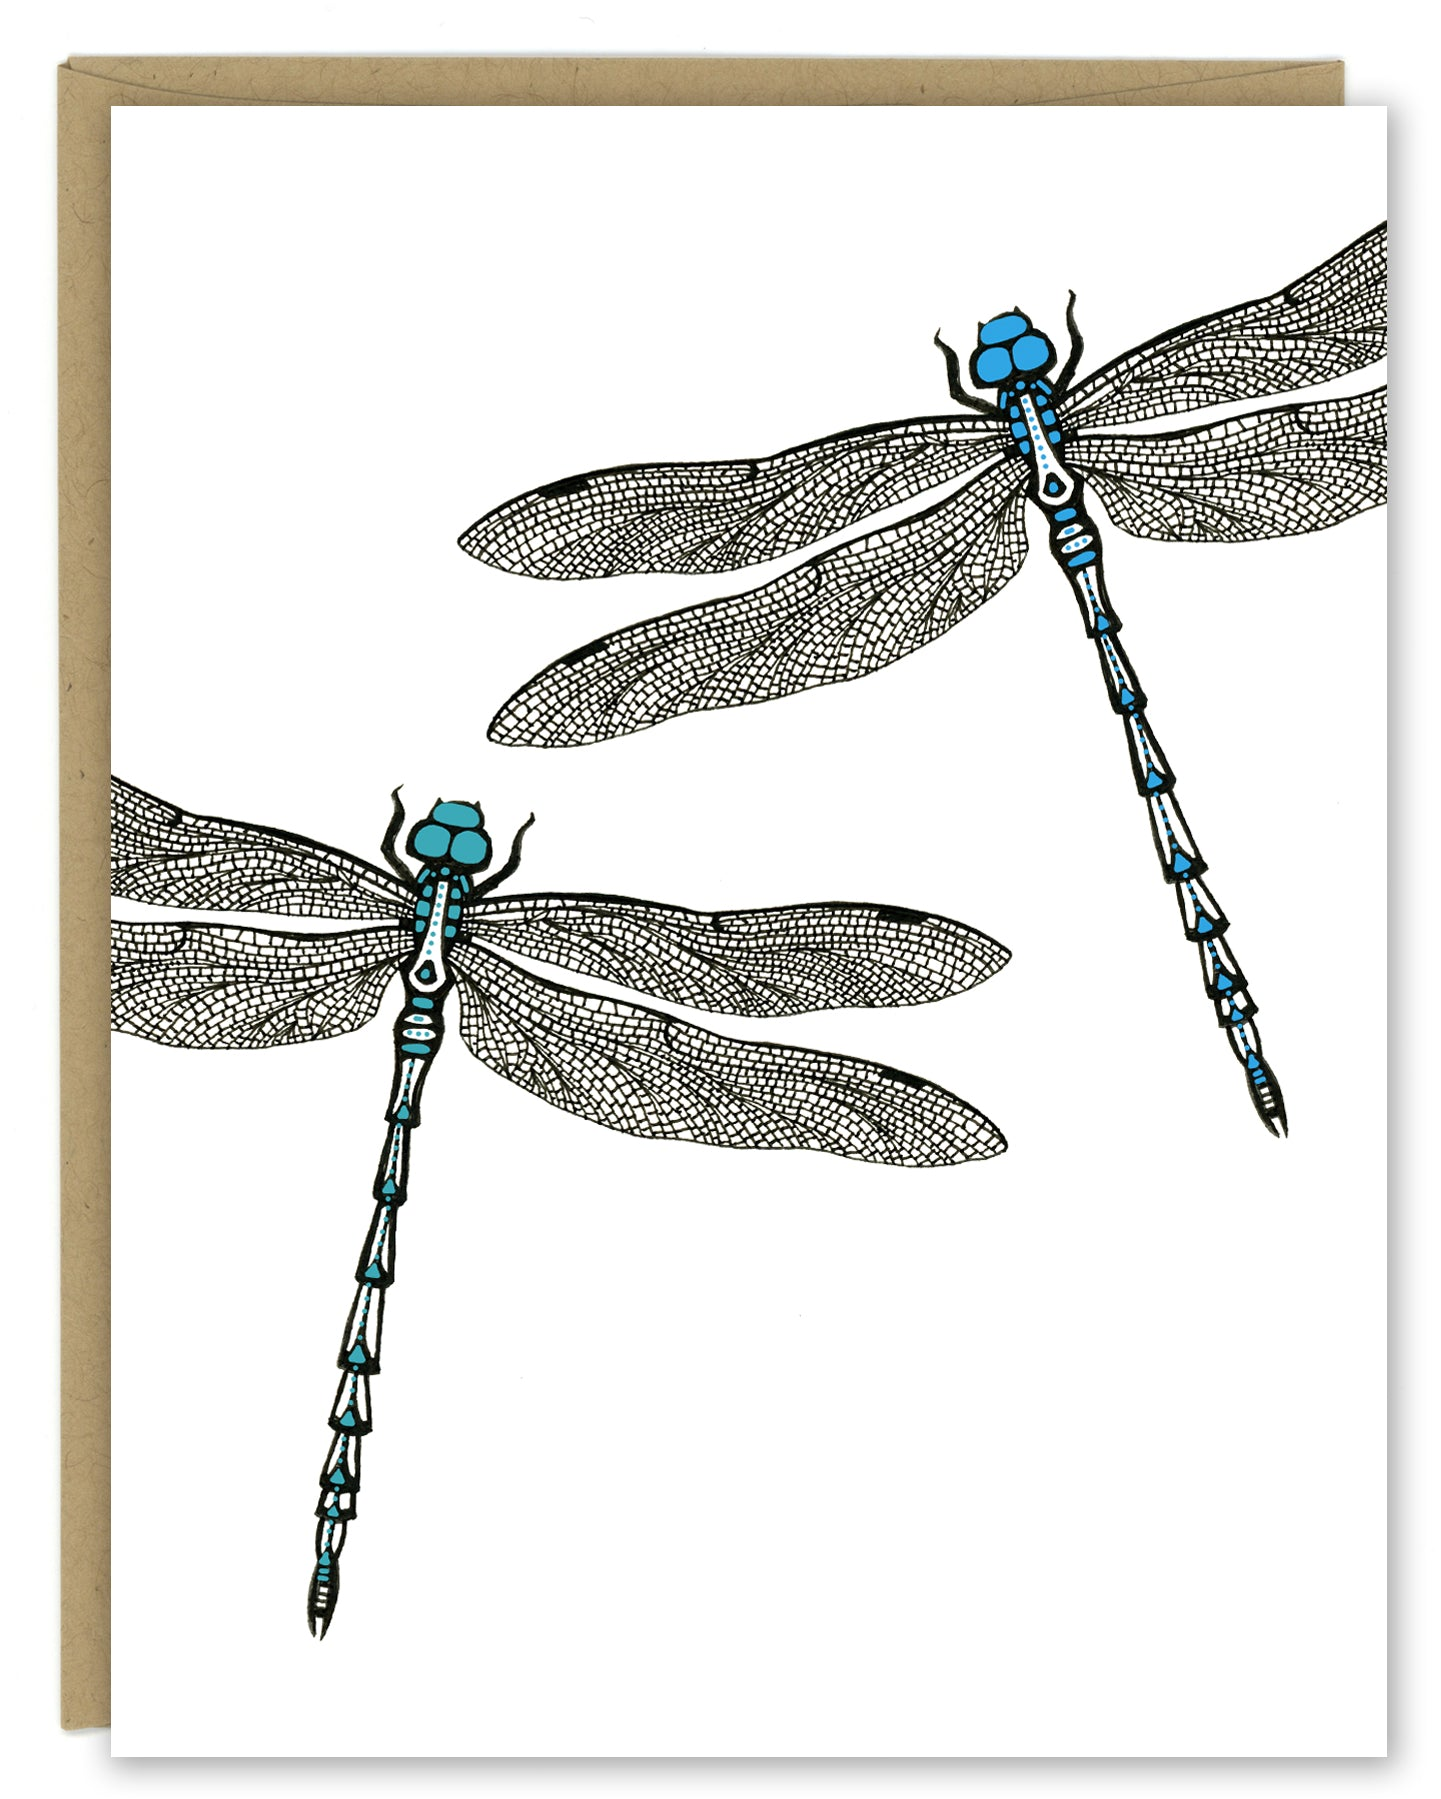 A greeting card showing a hand-drawn ink illustration of two dragonflies, one with blue highlights and one with teal accents. Shown with a Kraft paper envelope on a white background.